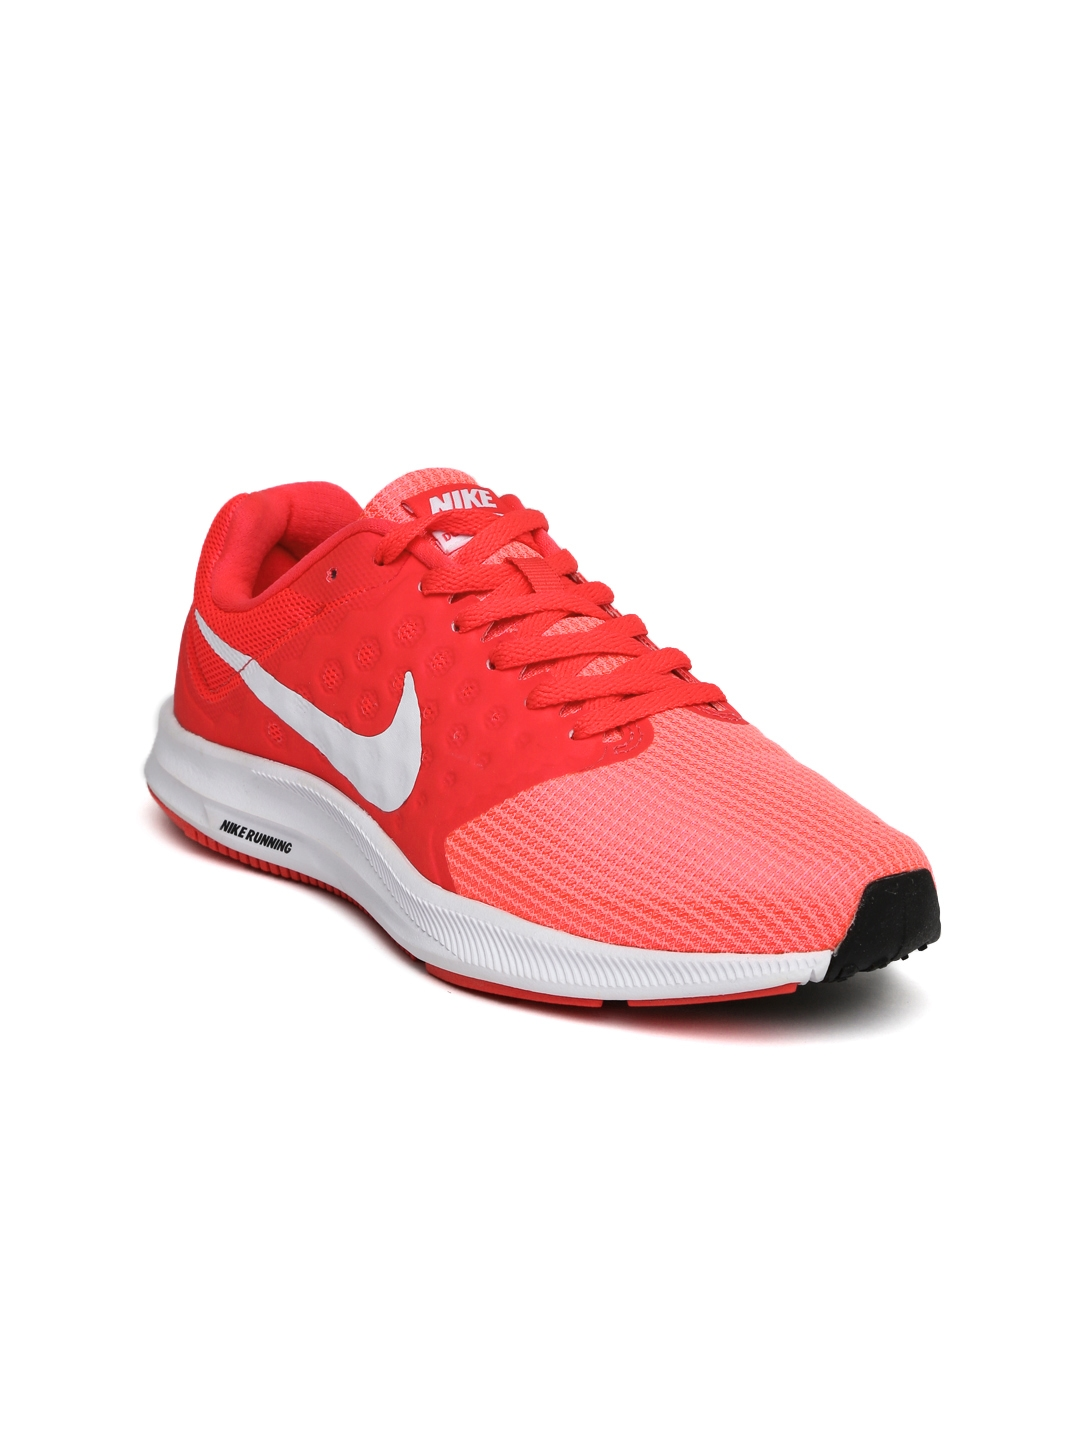 a04cf5b1855 Buy Nike Women Pink DOWNSHIFTER 7 Running Shoes - Sports Shoes for ...